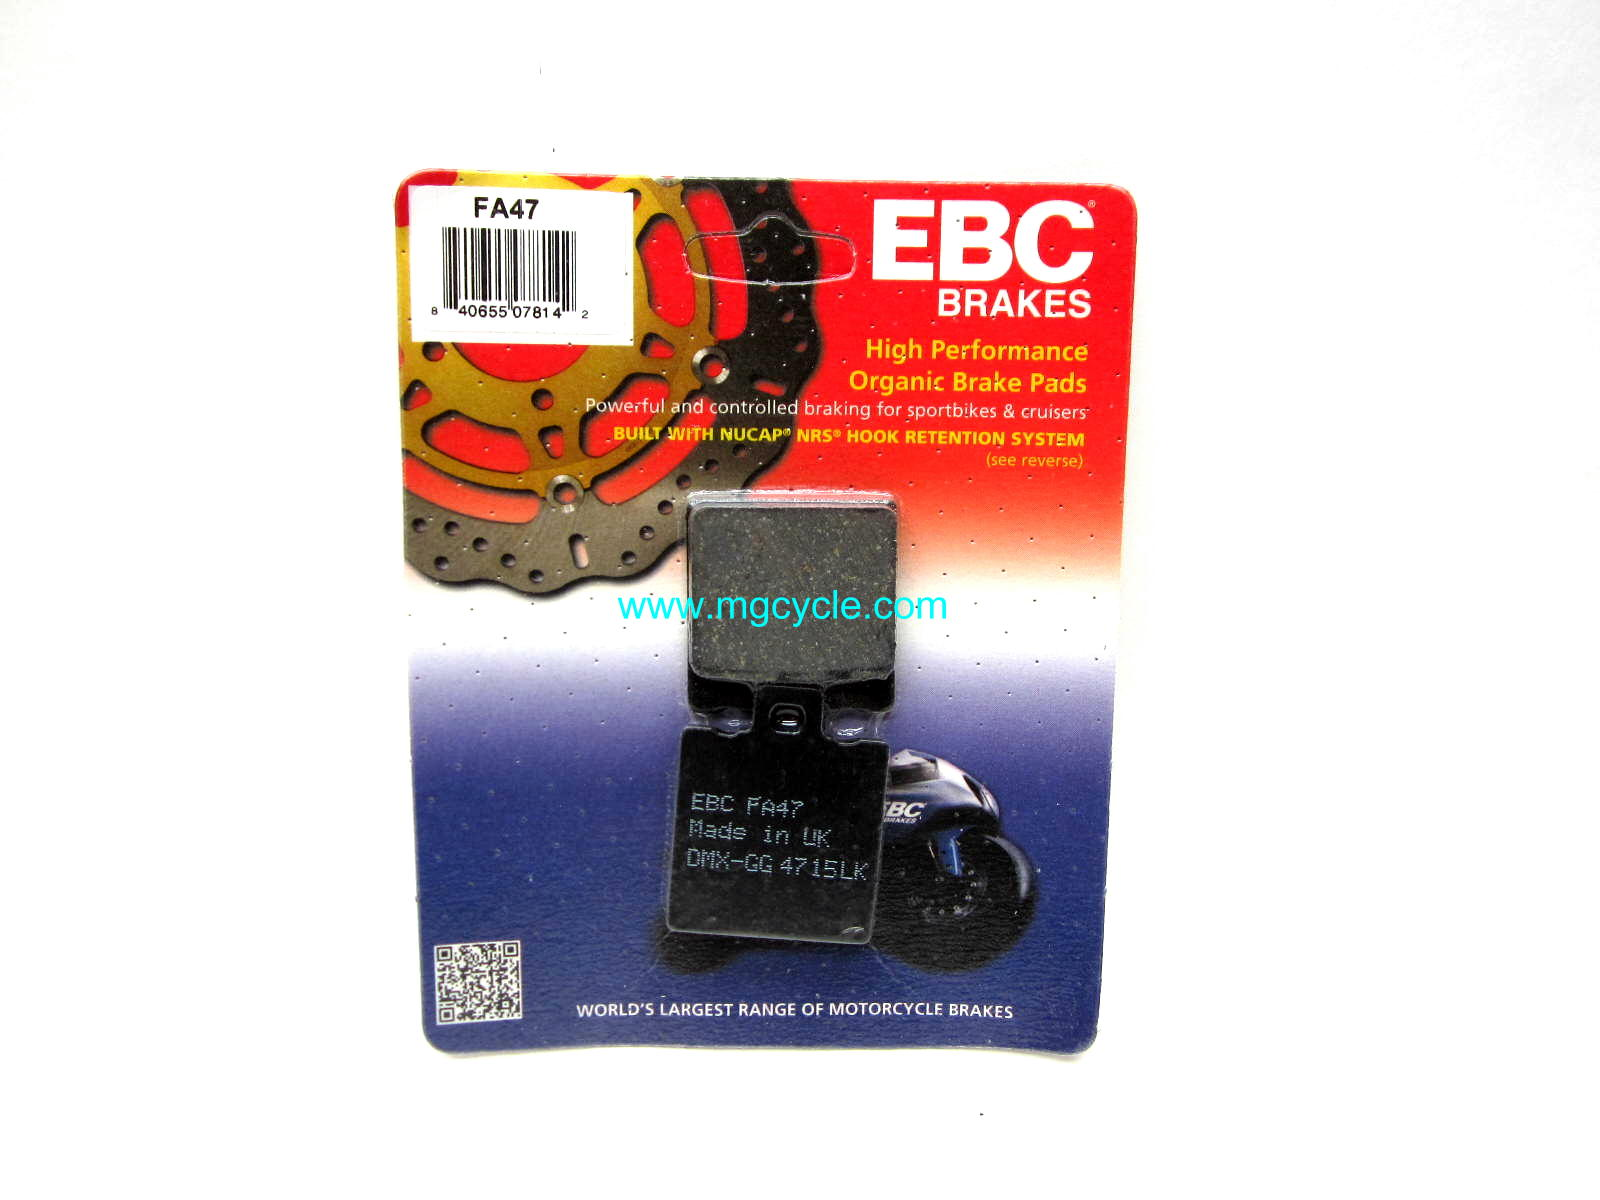 EBC kevlar organic brake pads, F05 small twins, V11 Sport rear